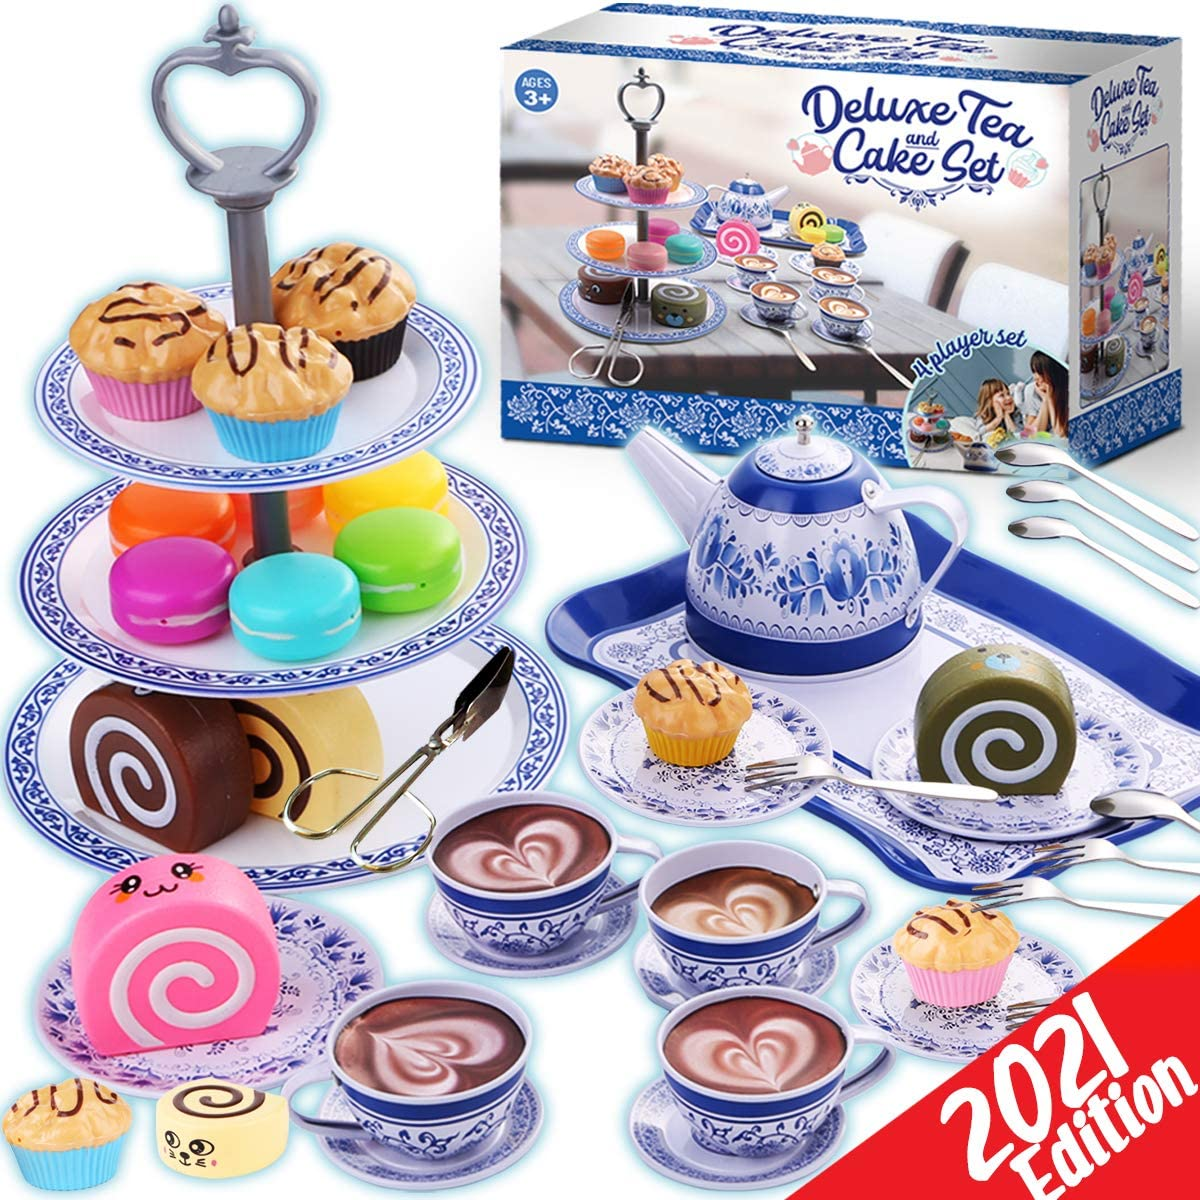 Cheffun Tea Party Set for Little Girls - Kids Pretend Play Kitchen Toys Sweet Princess Tea Cup Plastic Toys Play Food with Teapot Tray Cake Gift for Age 3 4 5 6 7 Year Old Toddler Child Girl Boys